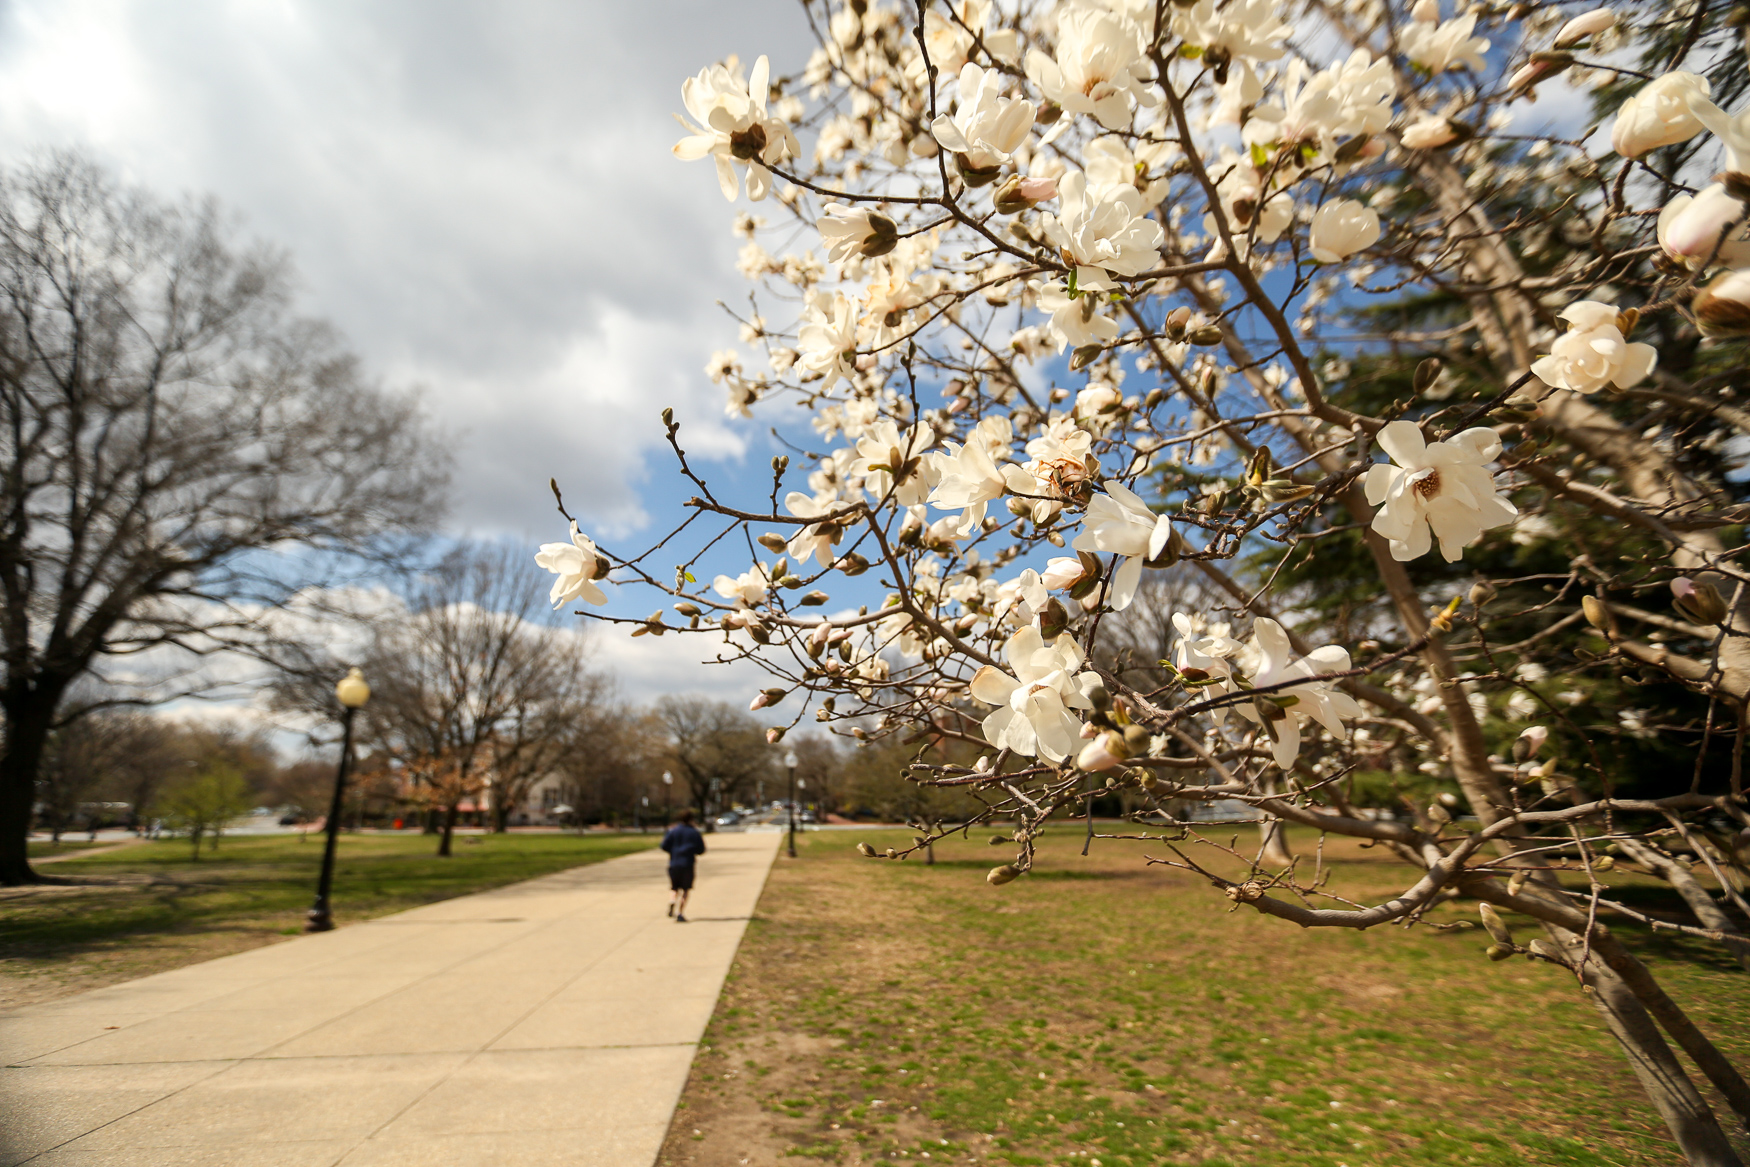 Between Capitol Hill and Lincoln Park, Hill East is full of blooming or soon-to-bloom trees! The around around The Hill in particular has tons of cherry blossoms, so it's an exceptionally picturesque spot if you also want to catch a glimpse of a D.C. landmark. (Amanda Andrade-Rhoades/DC Refined)